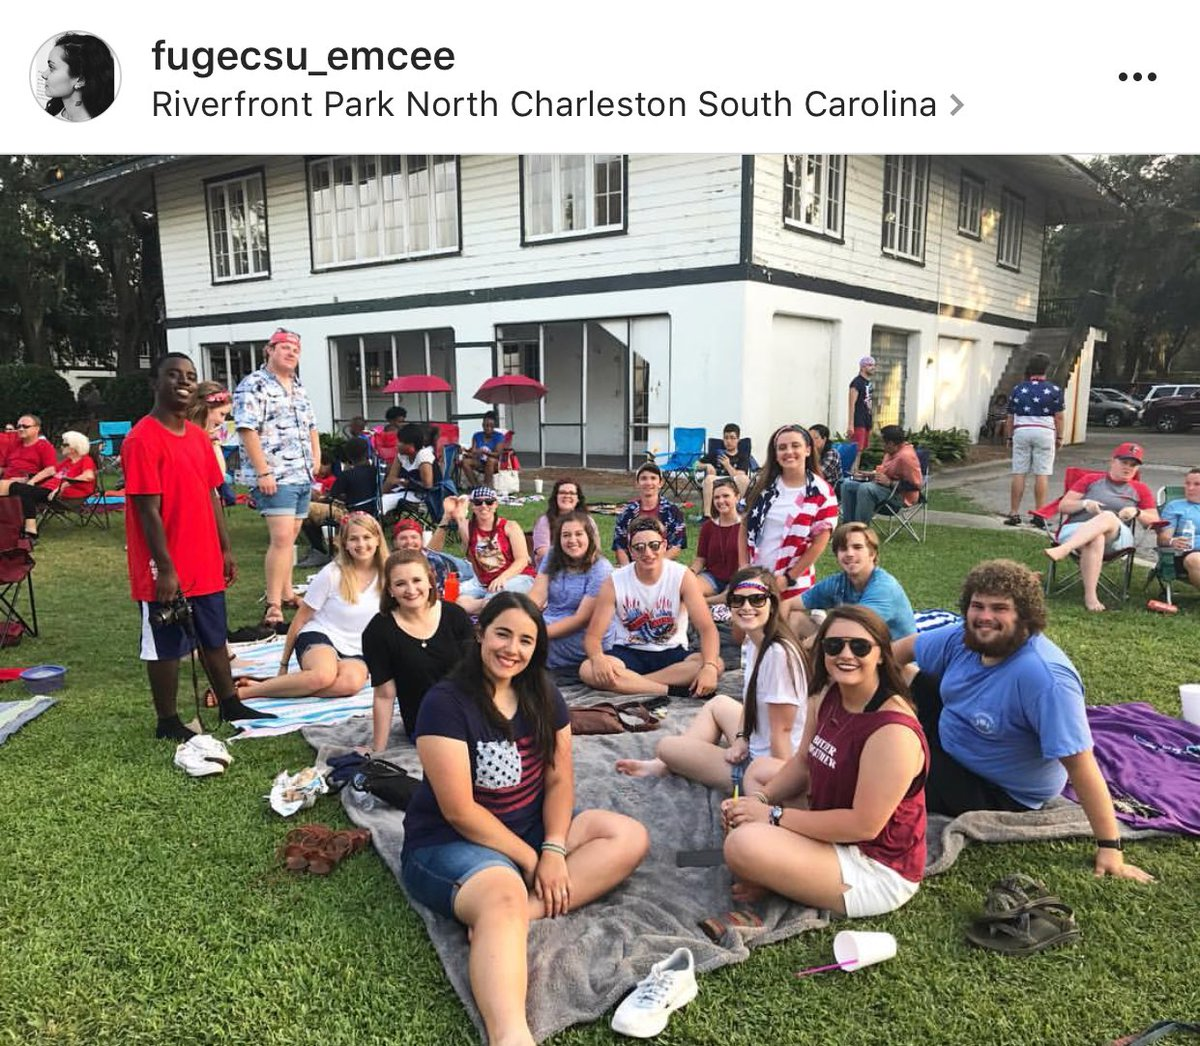 test Twitter Media - More FUGE July 4 fun!! We are thankful to live in a country where we are free to worship and share about Jesus. We hope you had a great day! https://t.co/CsNVlHgvfH